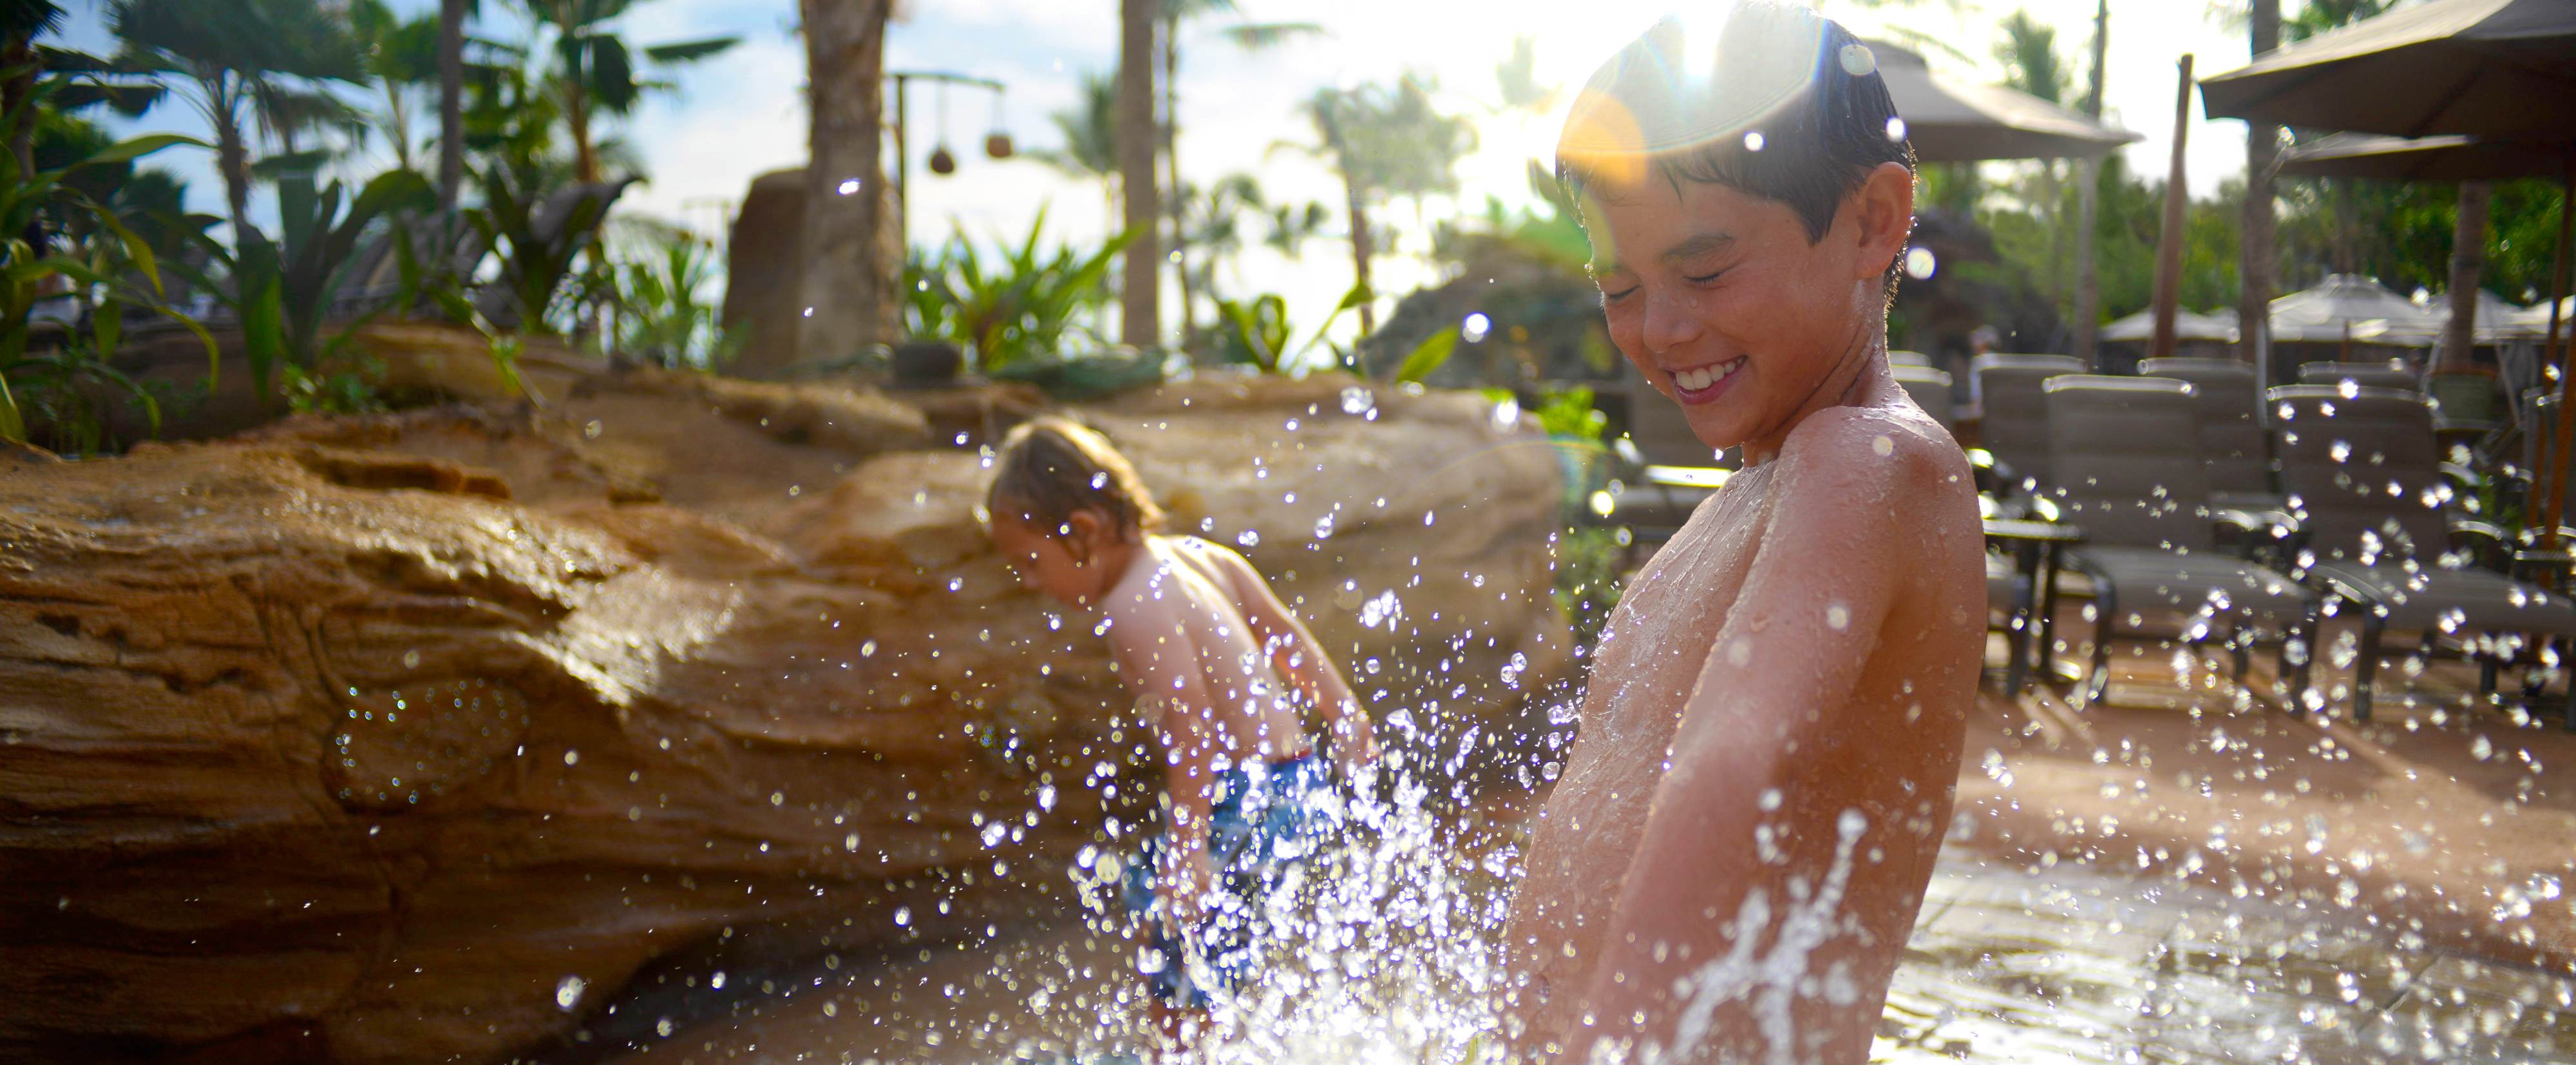 A boy braces himself against a spray of water in a play area surrounded by rocks as another boy plays